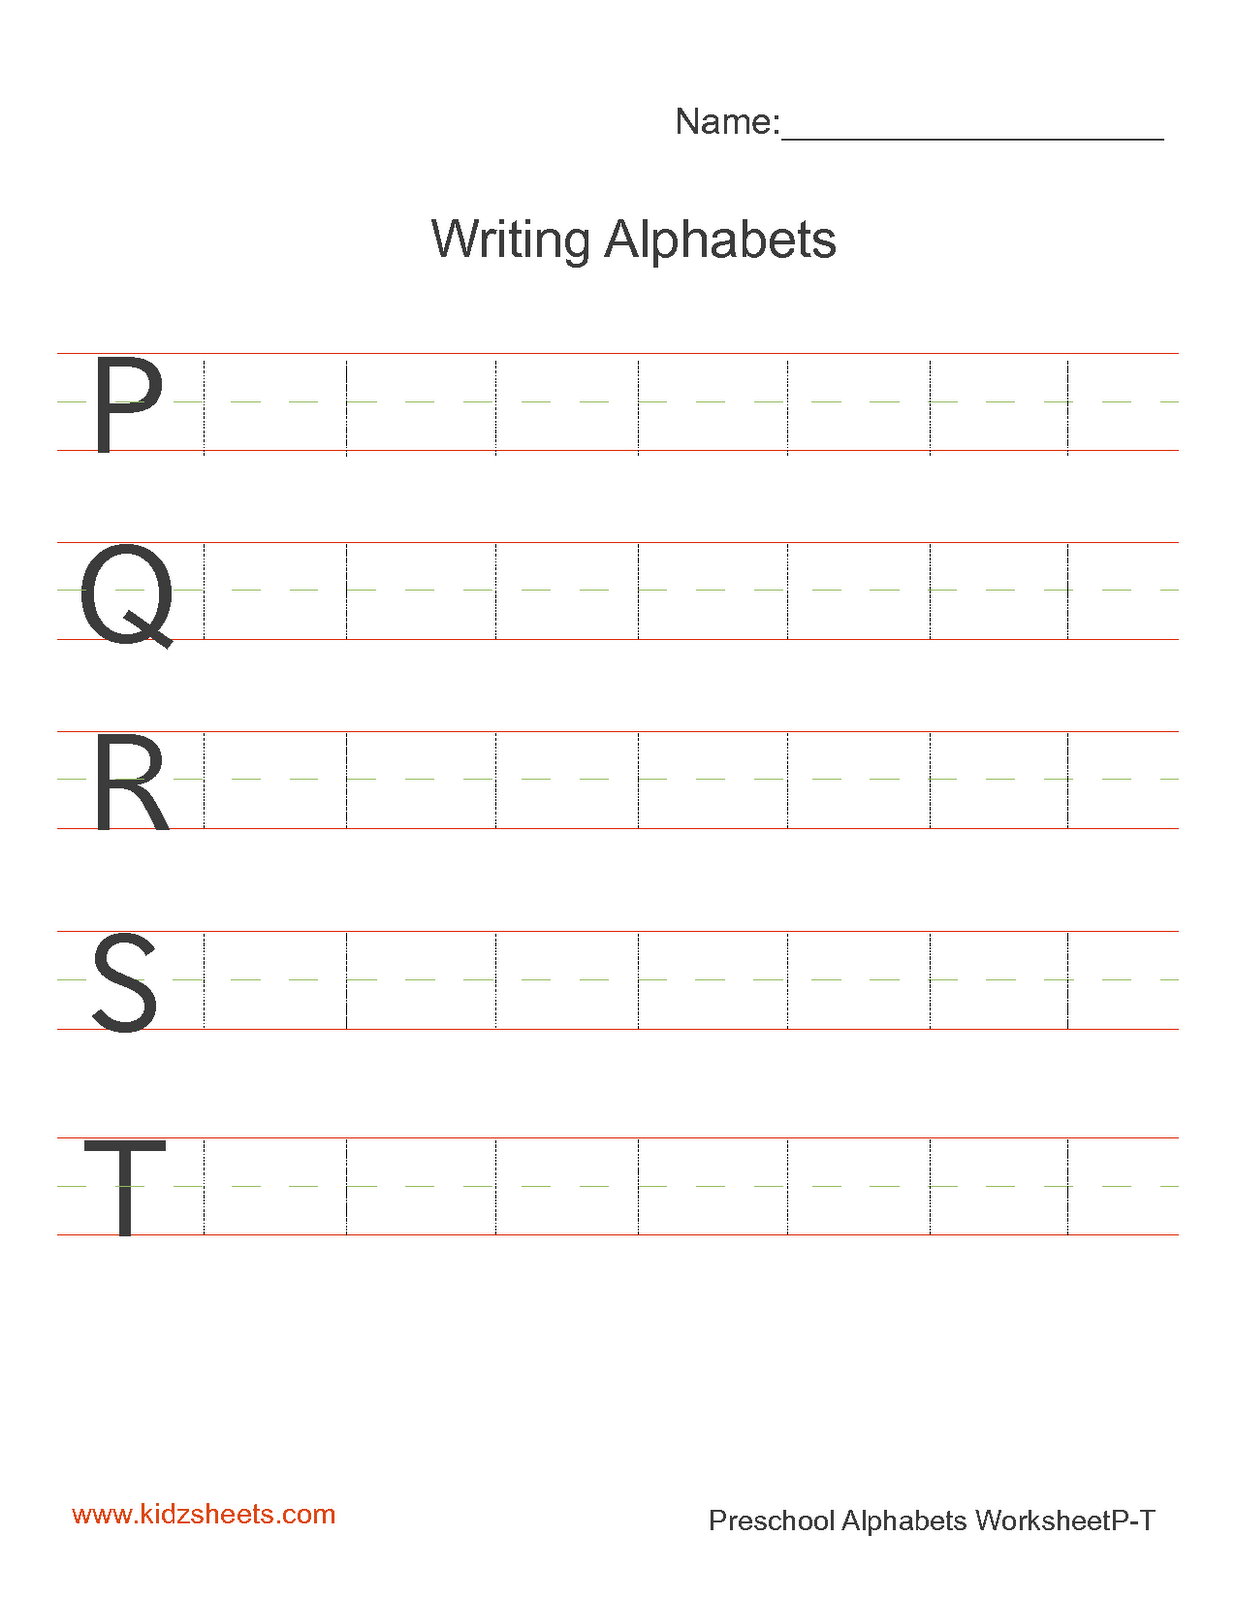 Kidz Worksheets Preschool Writing Alphabets Worksheet4